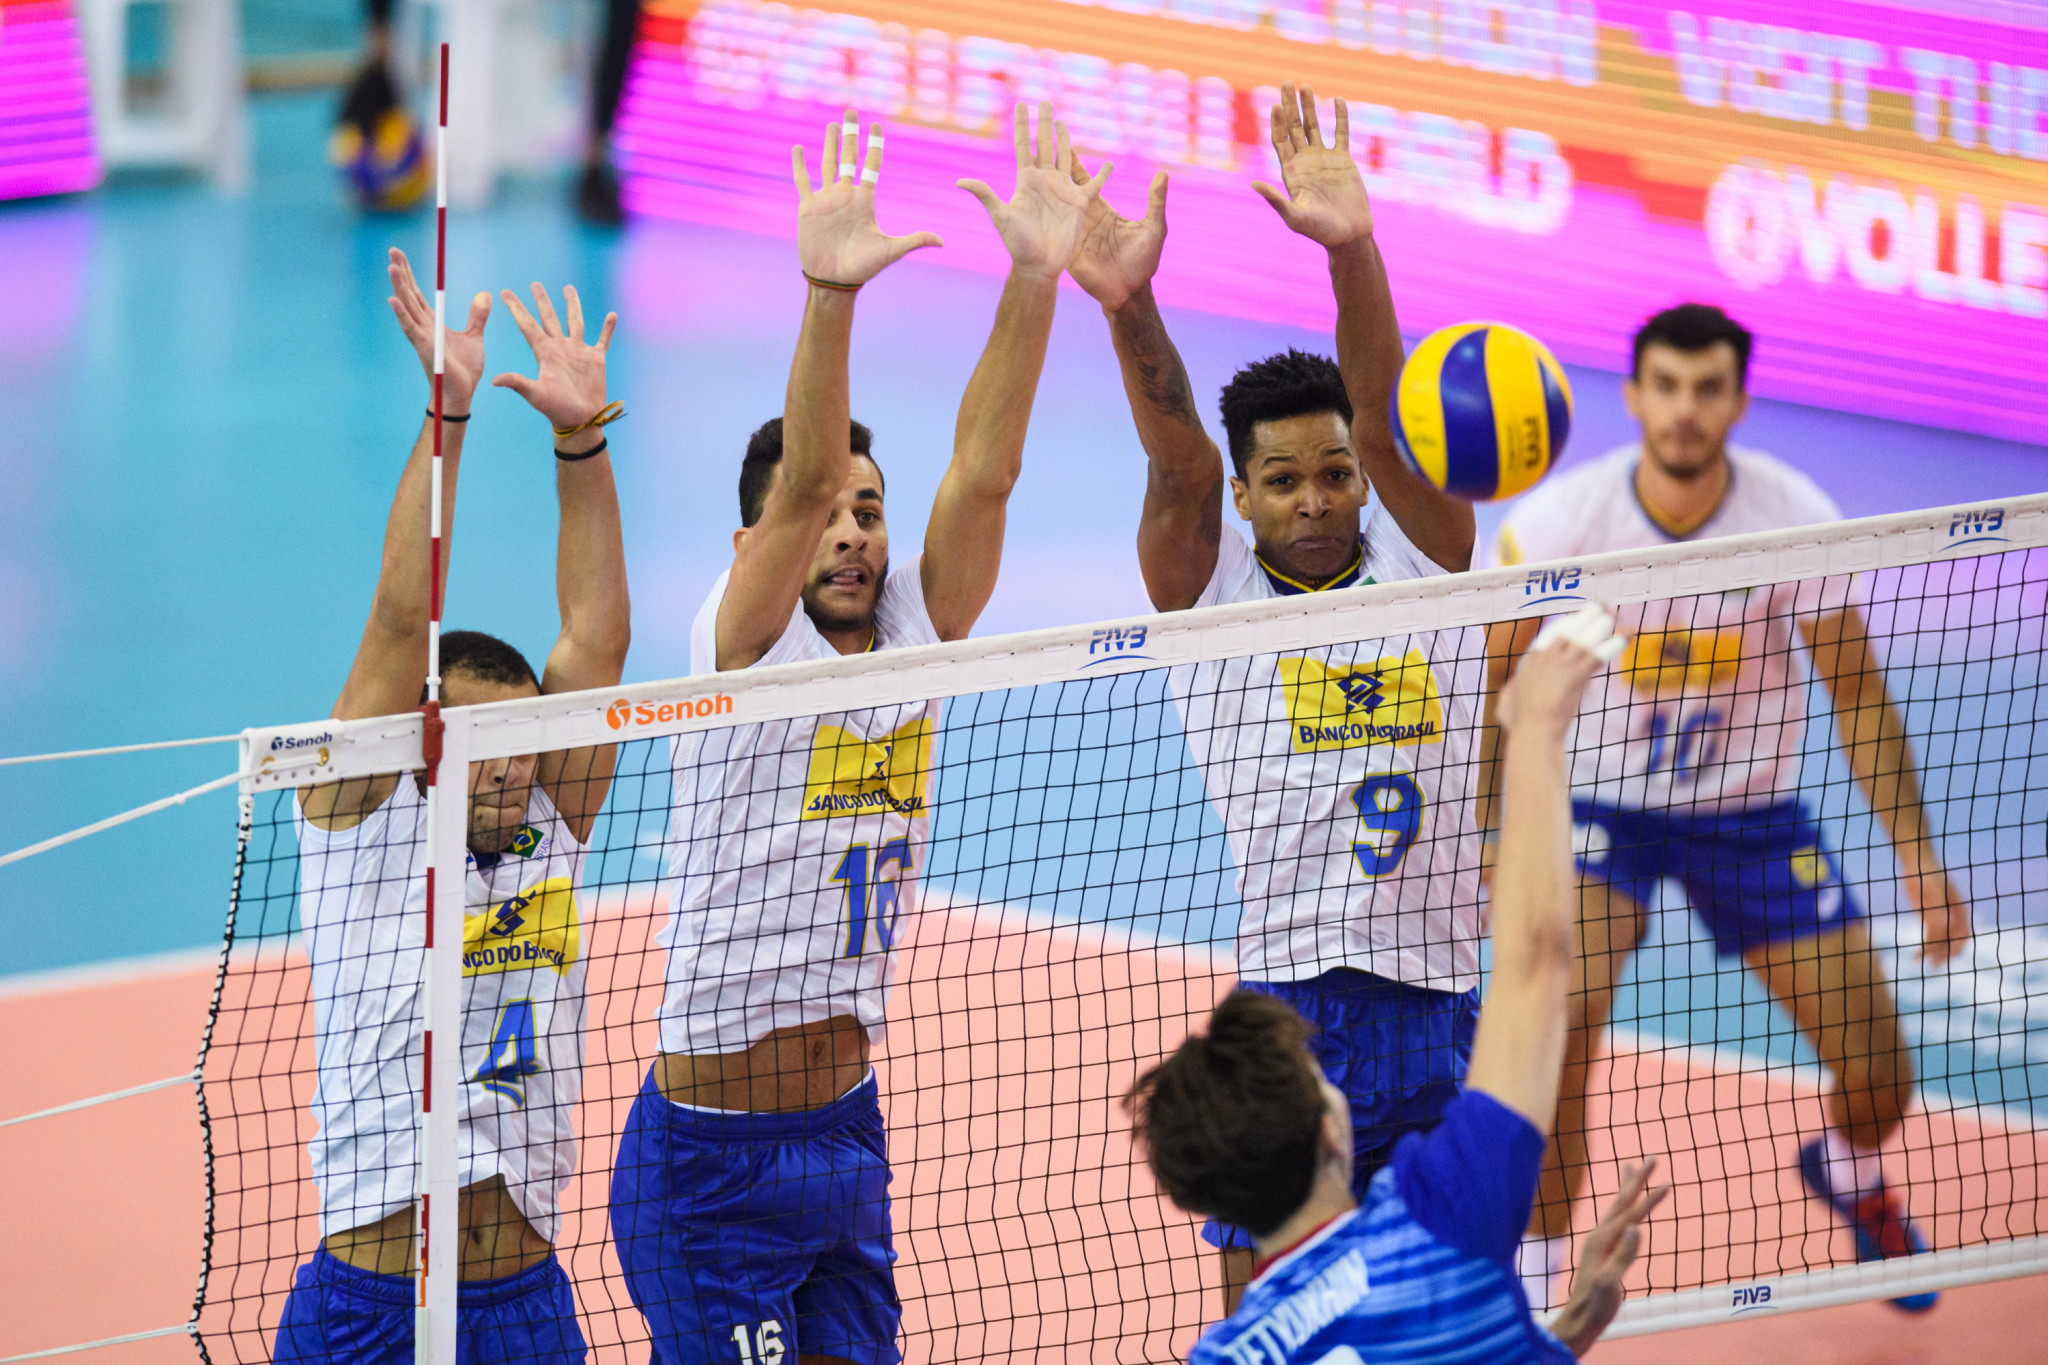 Brazil saw off Russia to reach the semi-finals ©FIVB